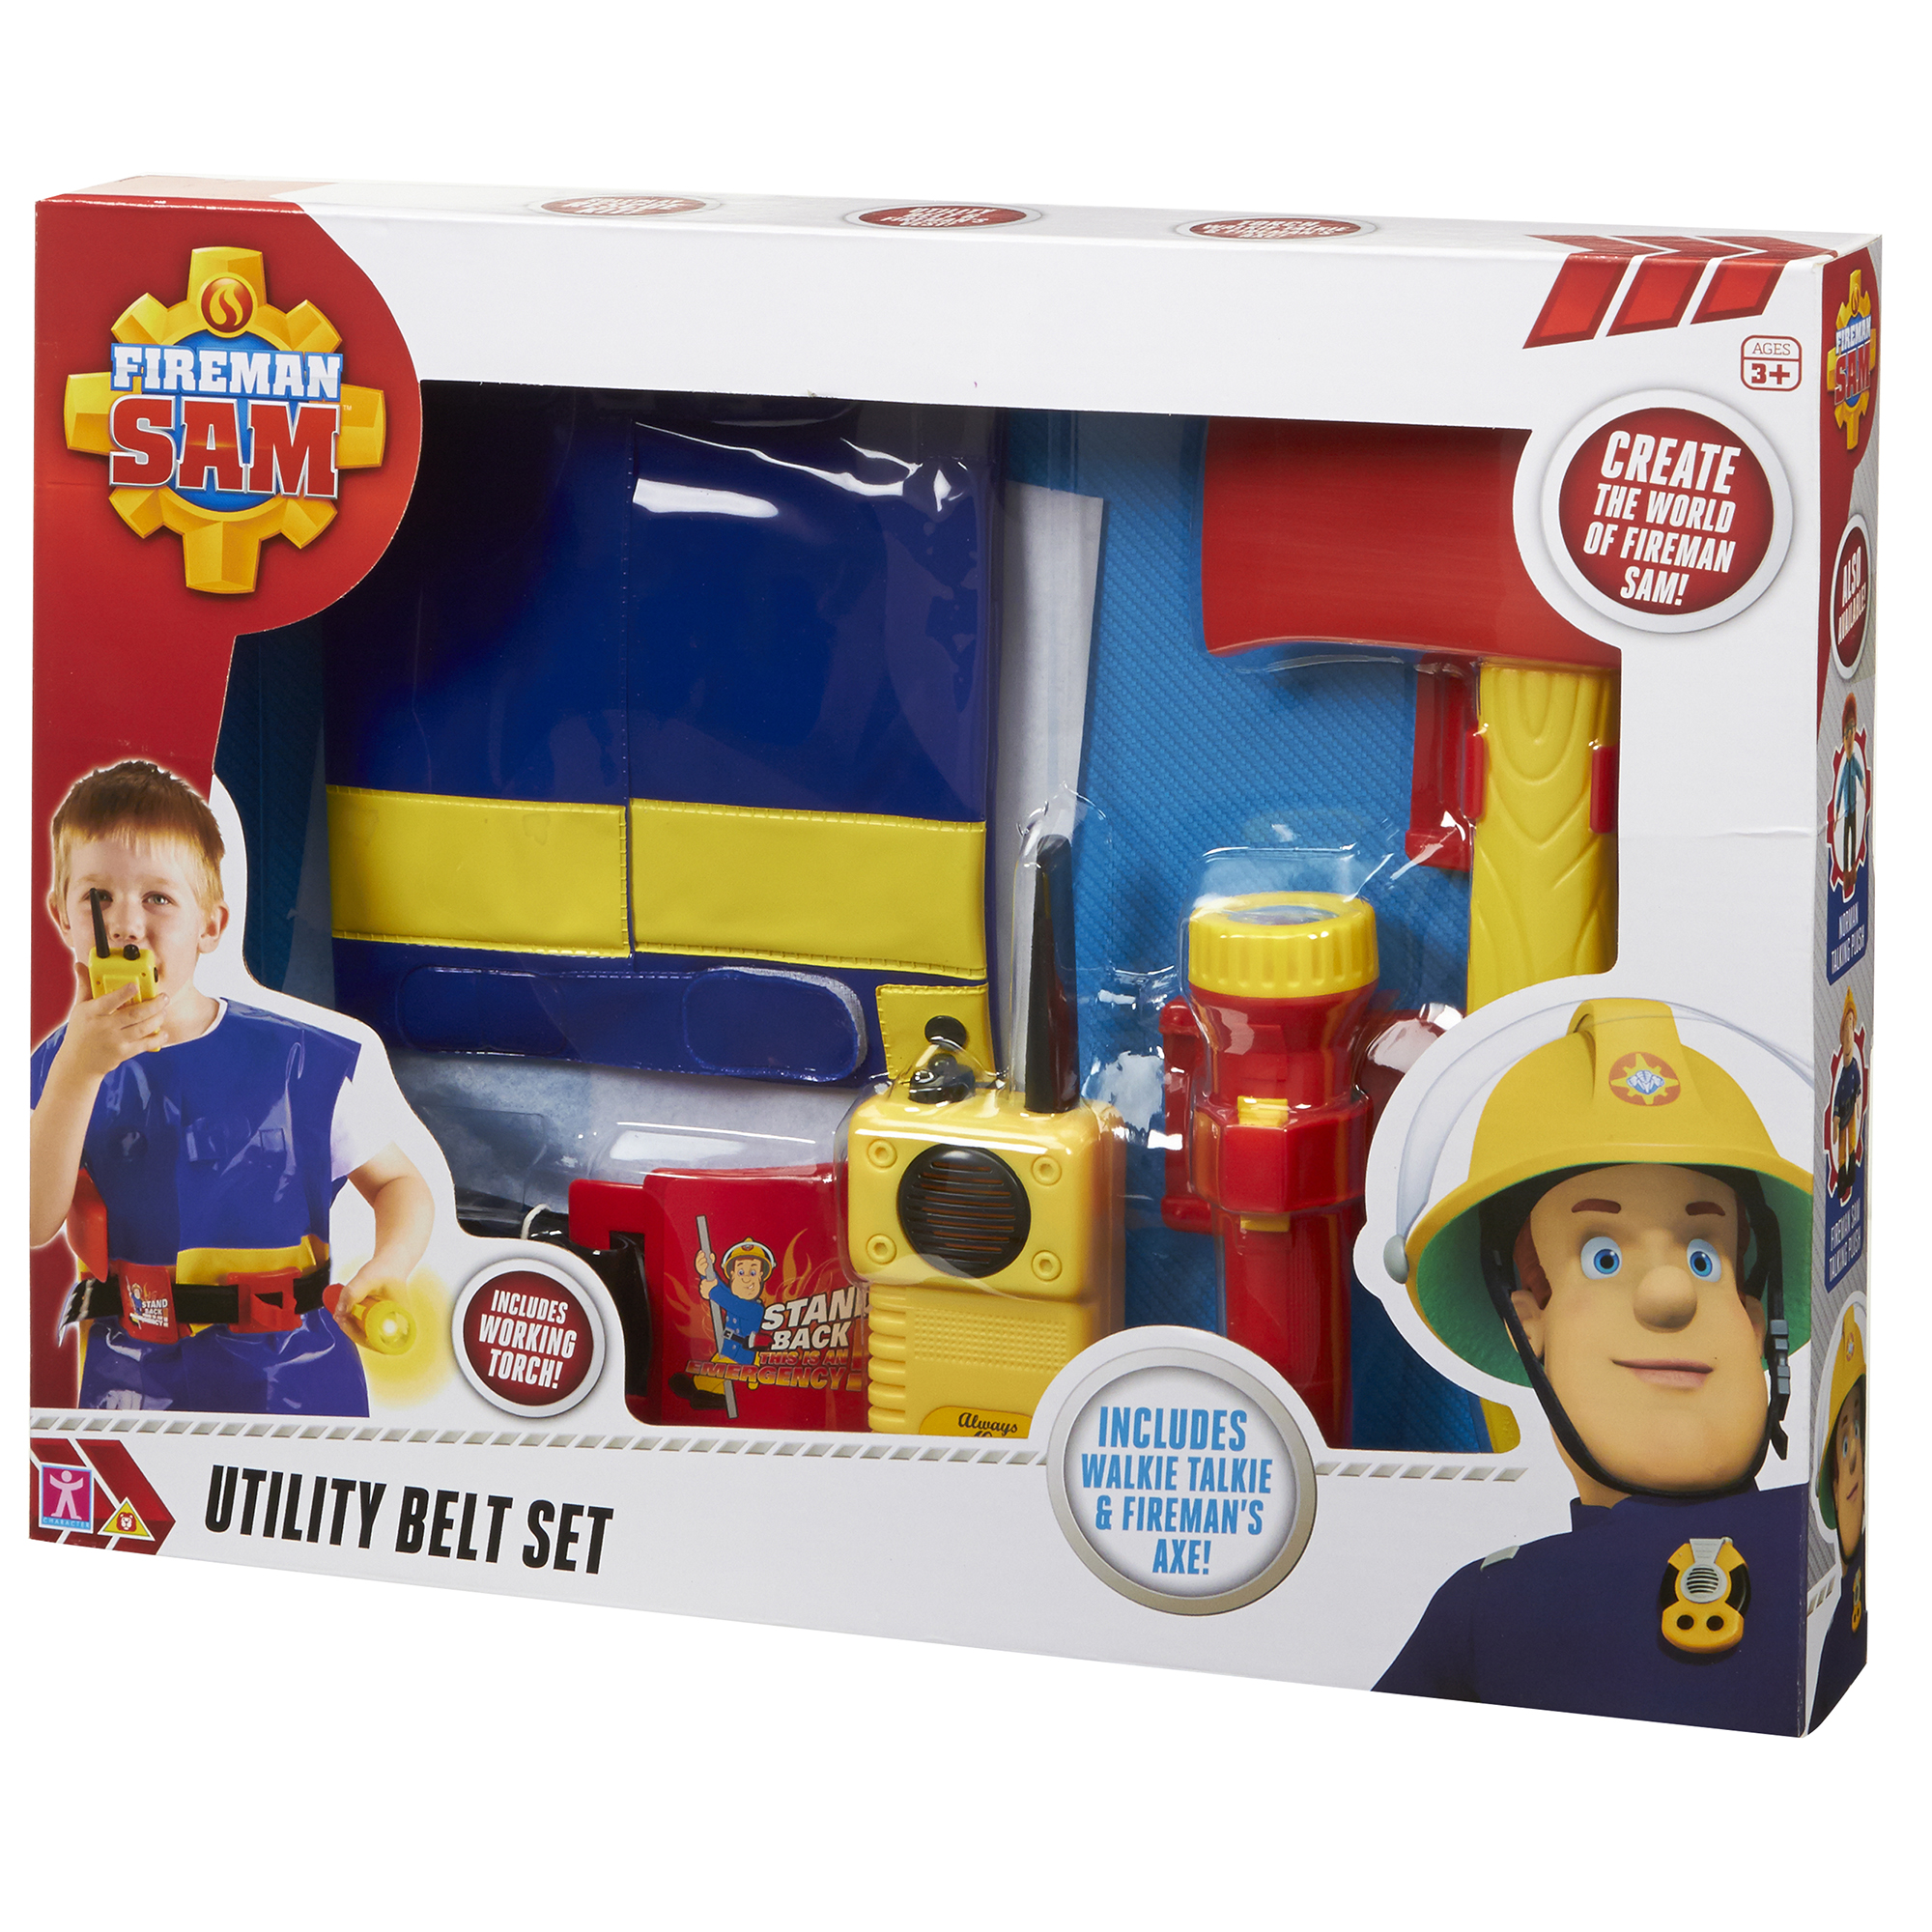 Picture of Fireman Sam Utility Belt With Jacket & Accessories